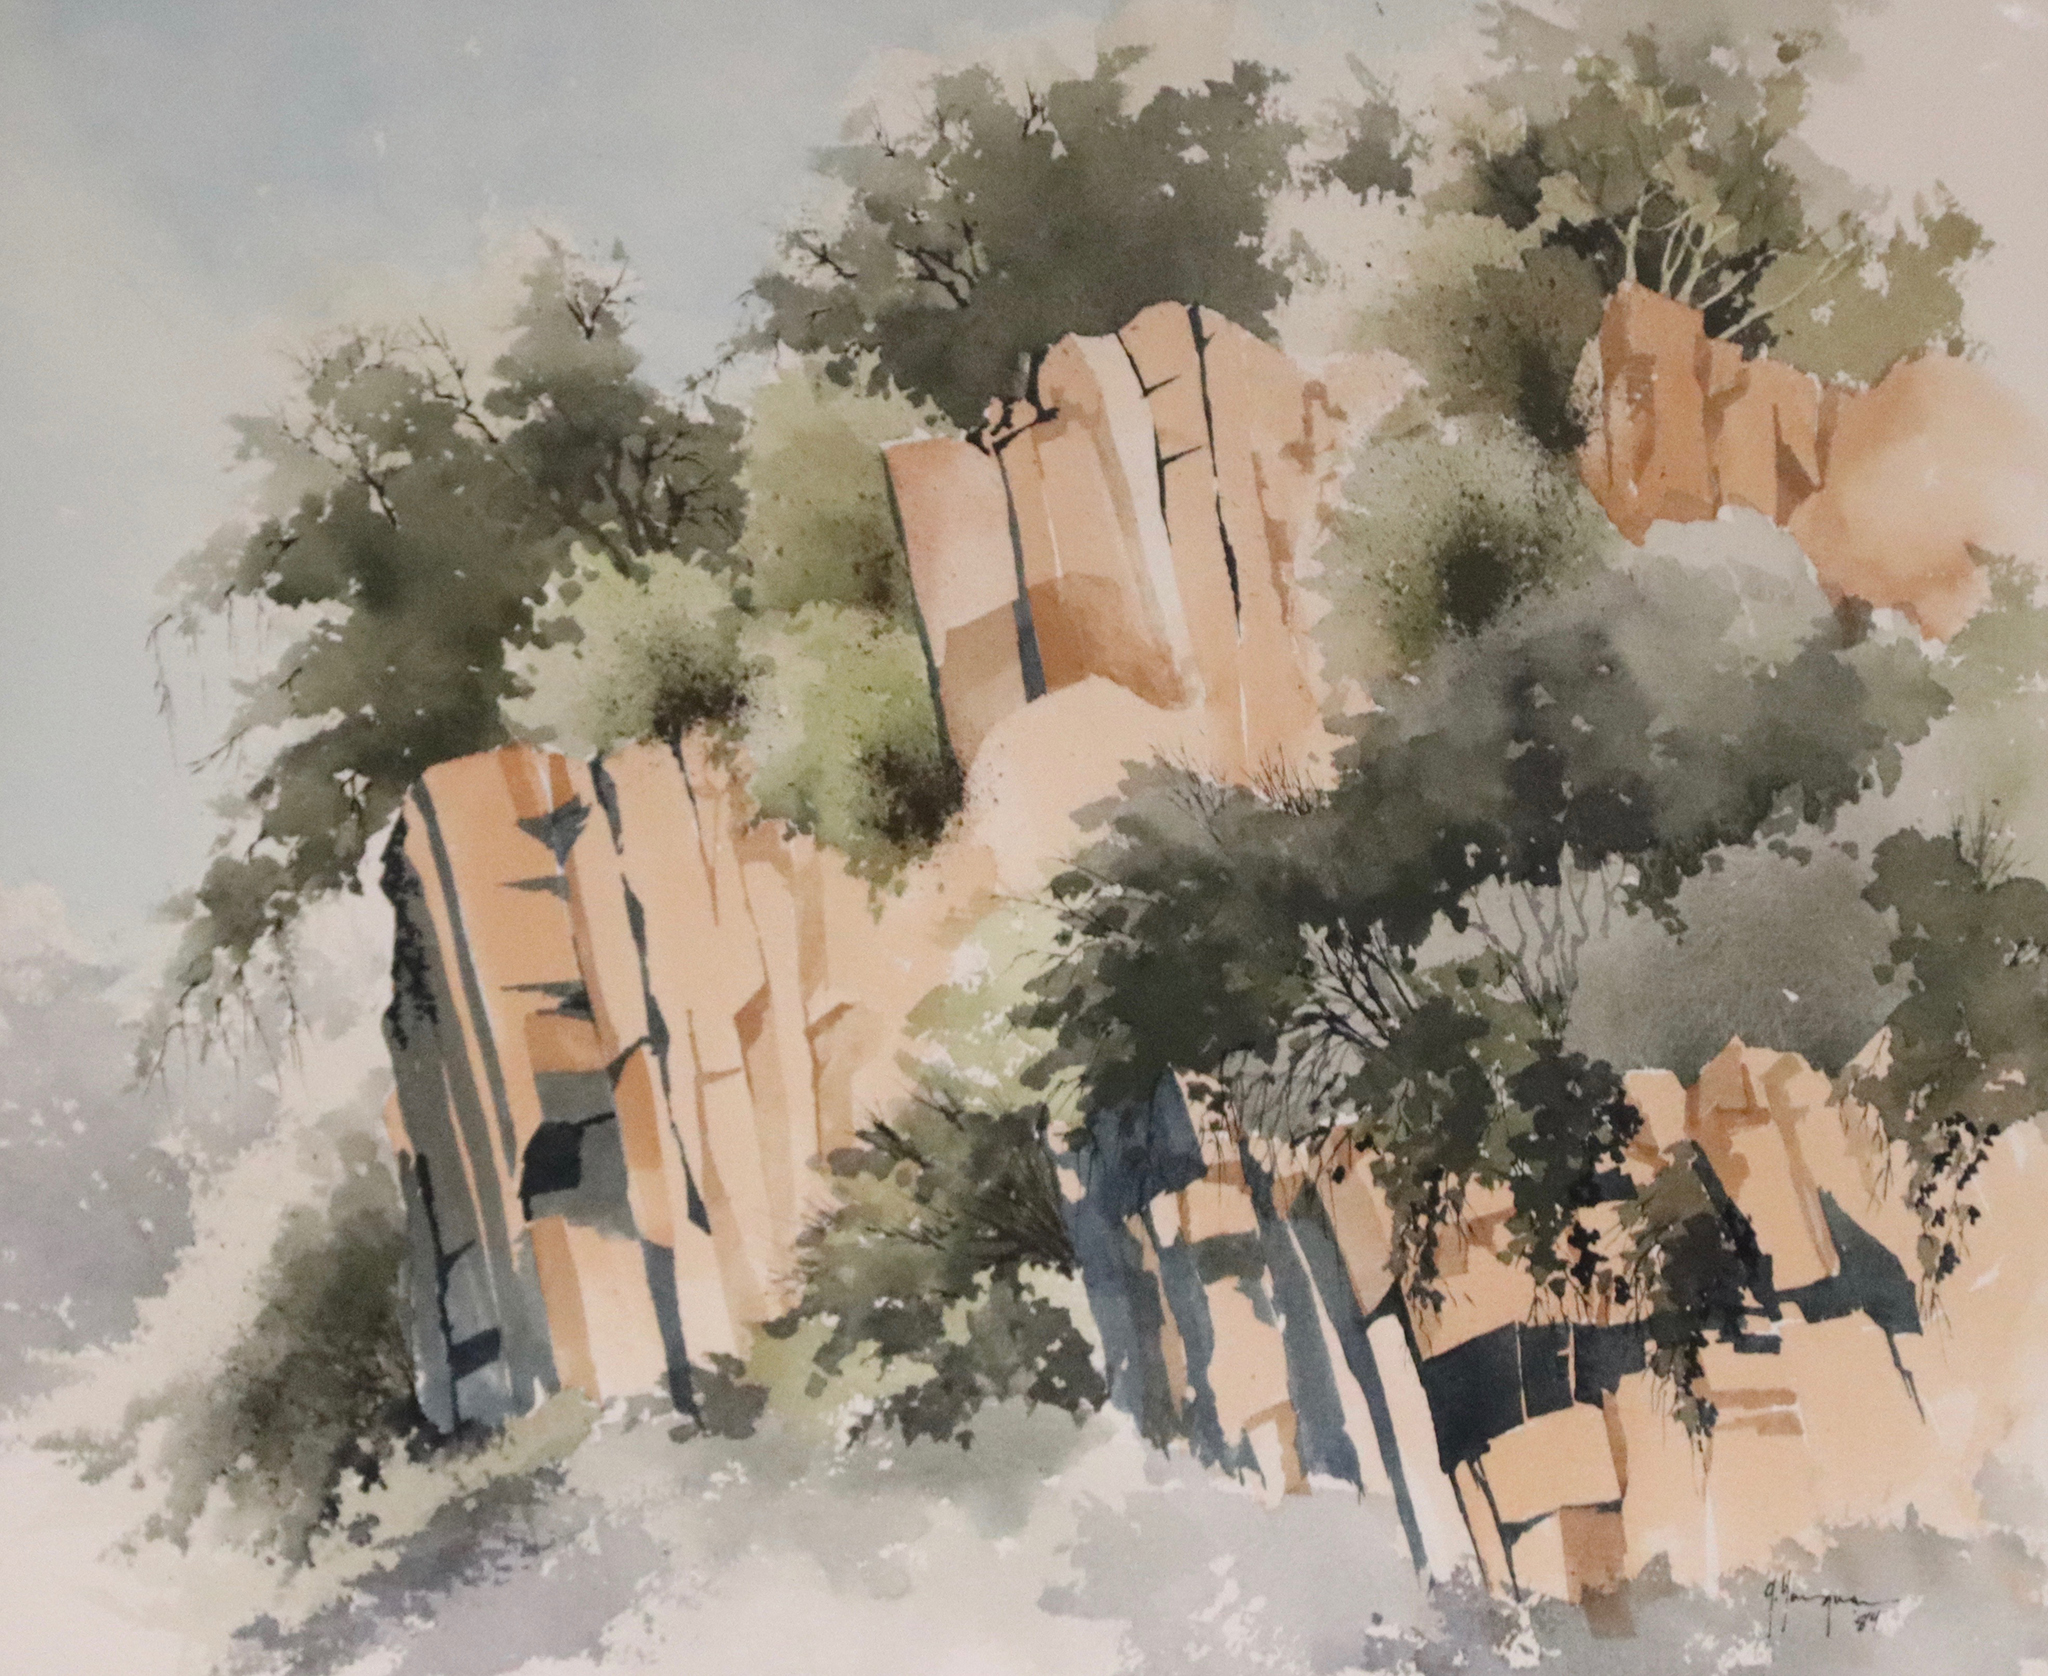 Painting #06 Golden Gate Rock Castles